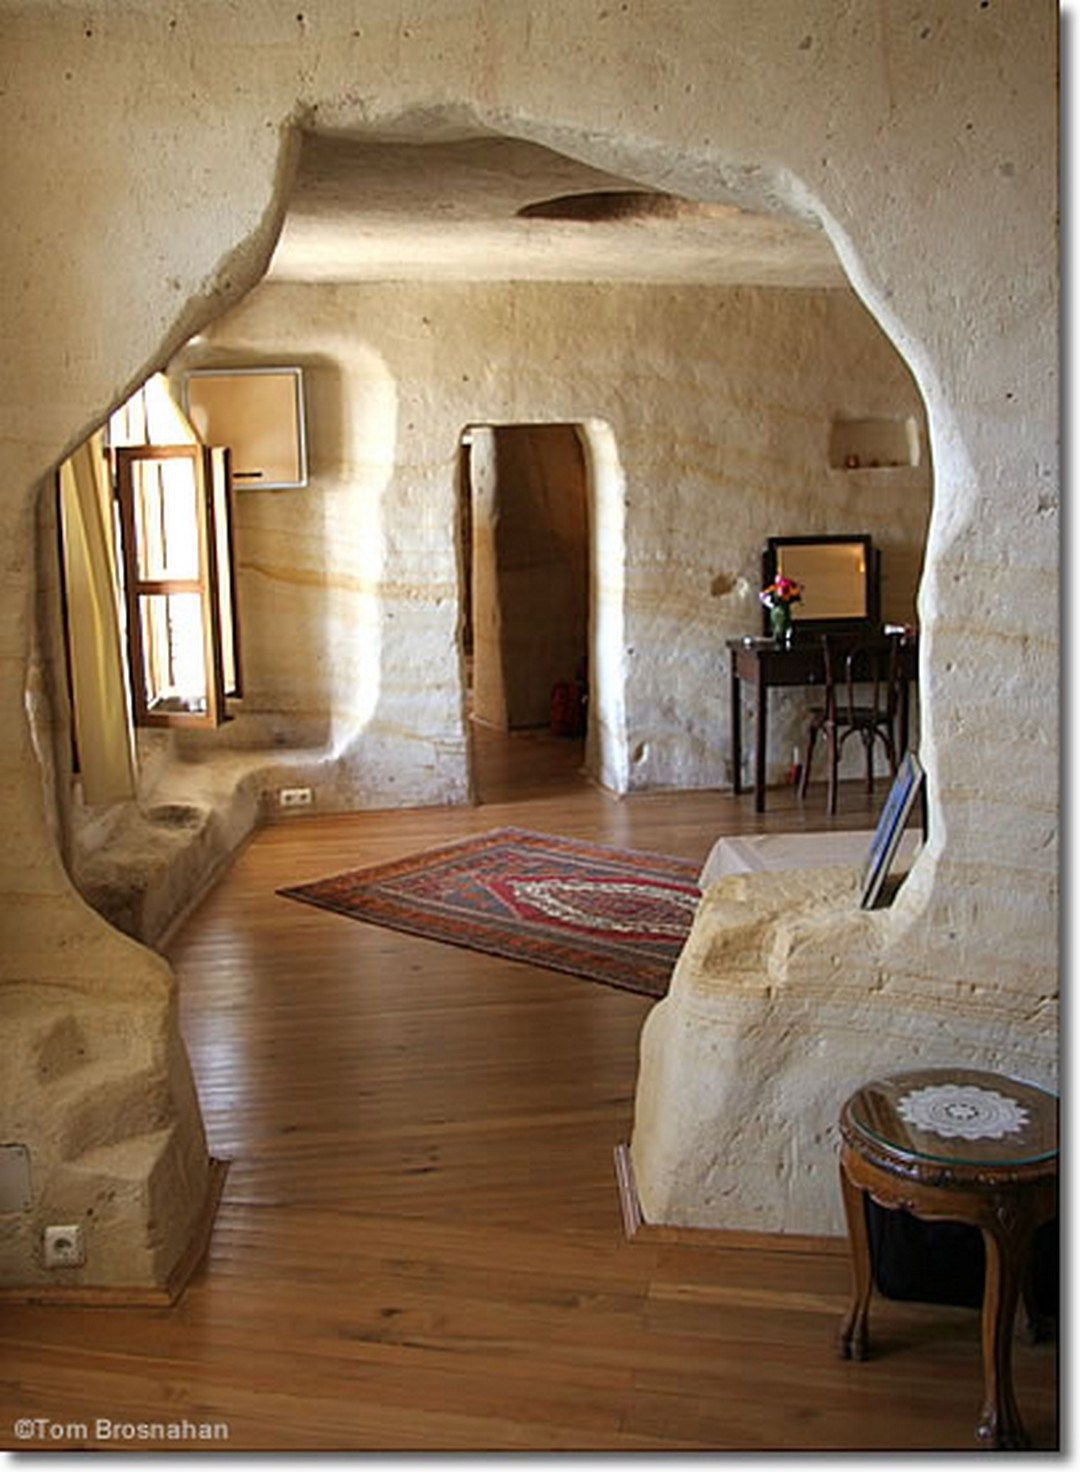 Home Interior Design Paint Ideas: Cob House Interior Design Ideas 99 Stunning Photos